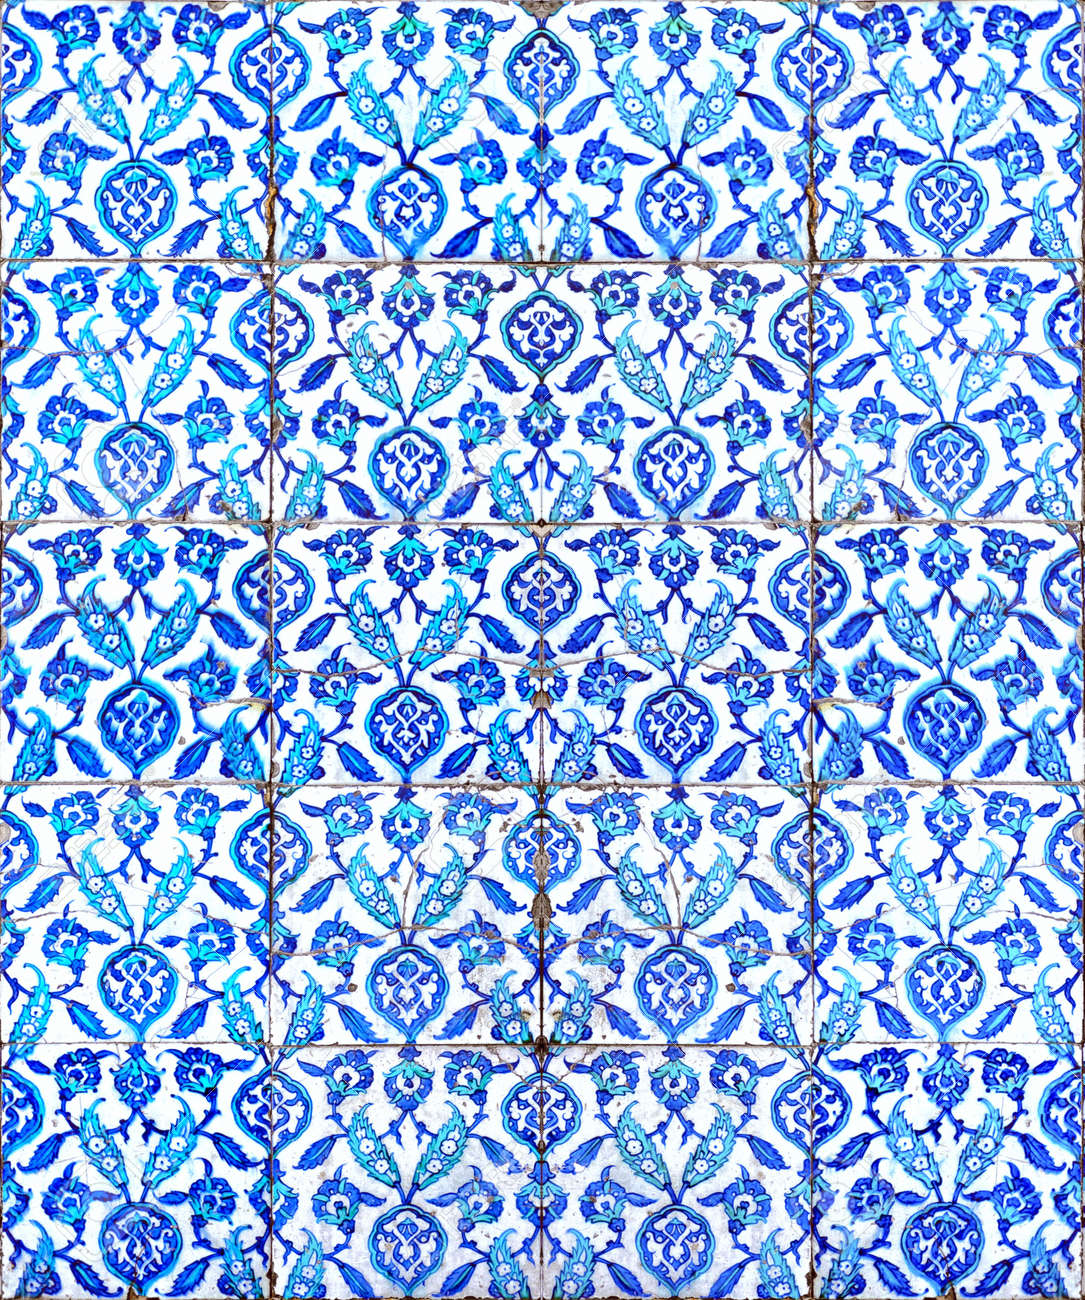 A seamless background image of ancient hand painted ceramic tiles from an islamic mosque. Stock Photo - 12958865